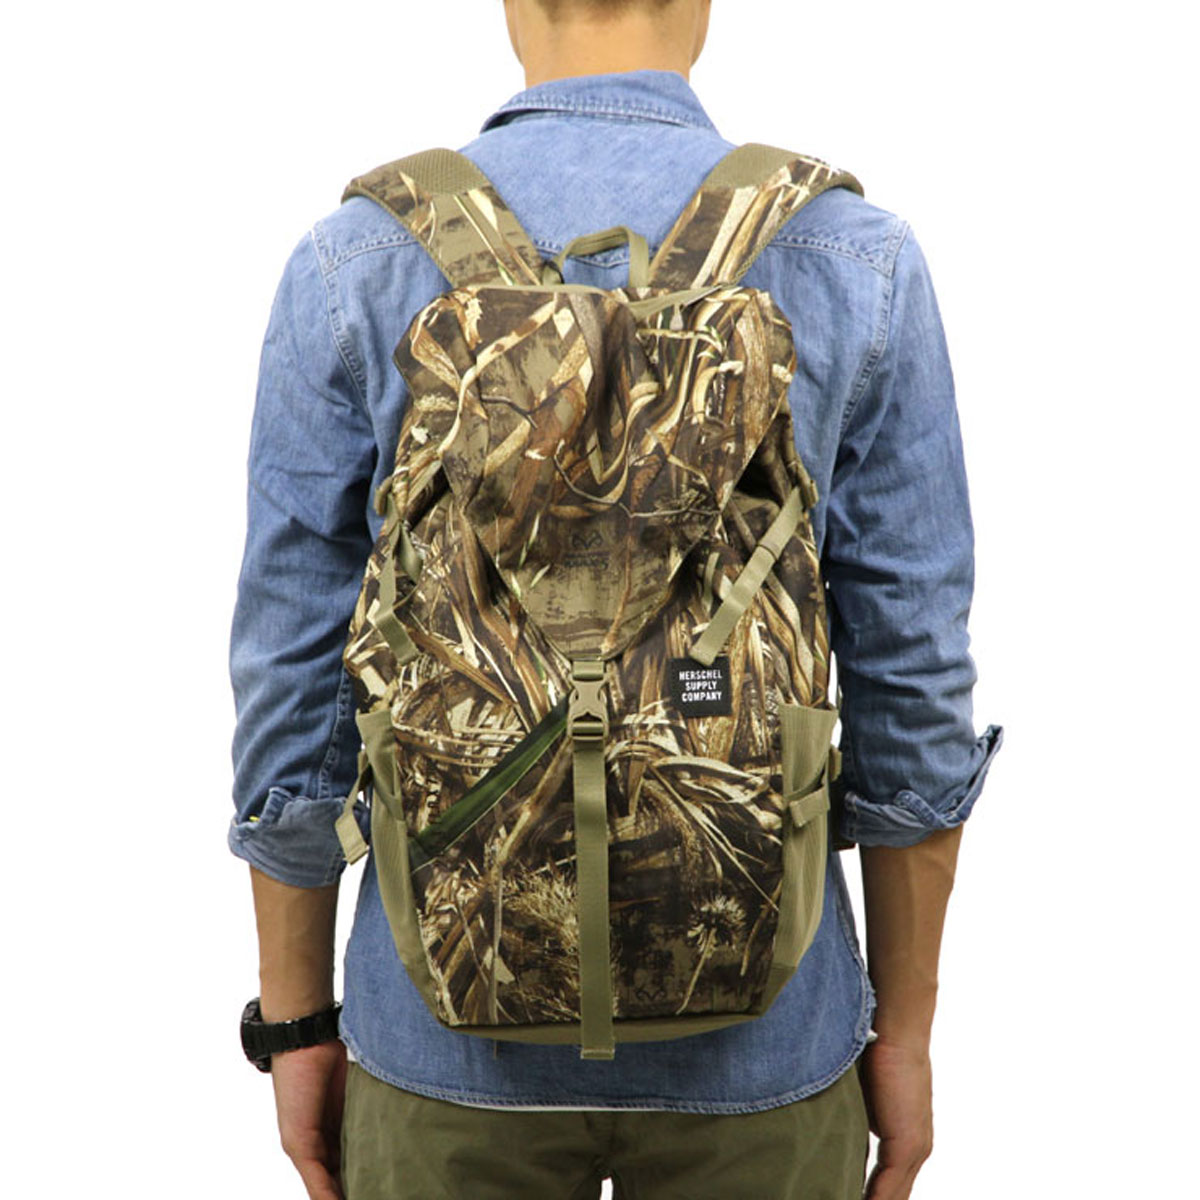 Hershel Herschel Supply regular store bag BARLOW BACKPACK LARGE TRAIL  10319-01454-OS REALTREE 01db535fe5939